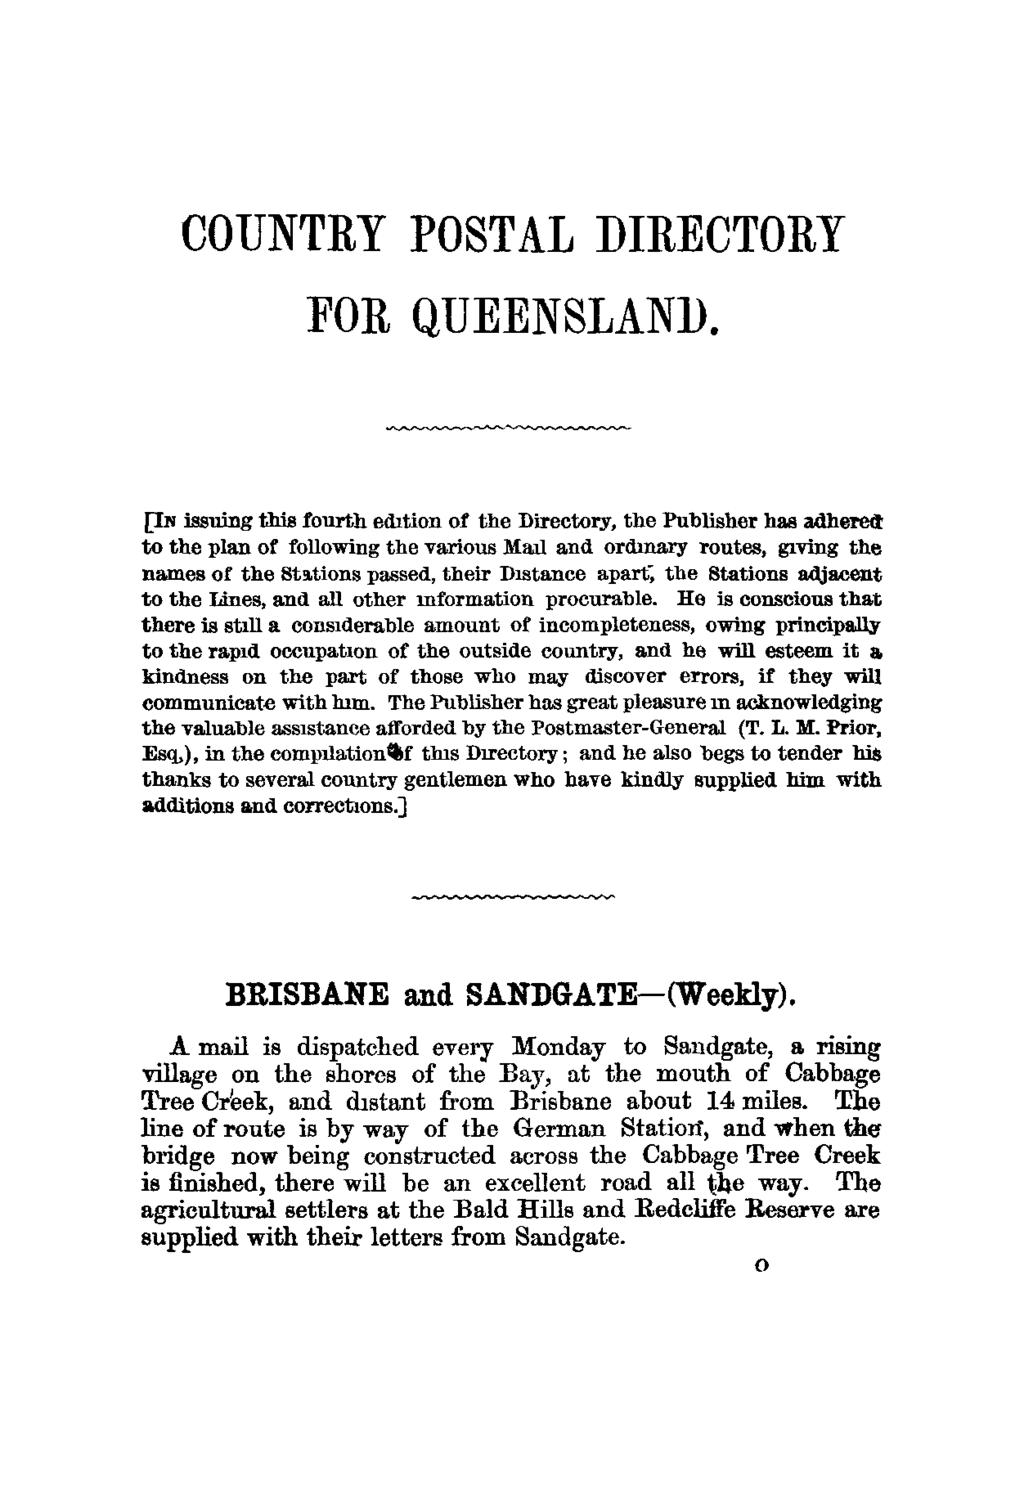 COUNTRY POSTAL DIRECTORY FOR QUEENSLAND.